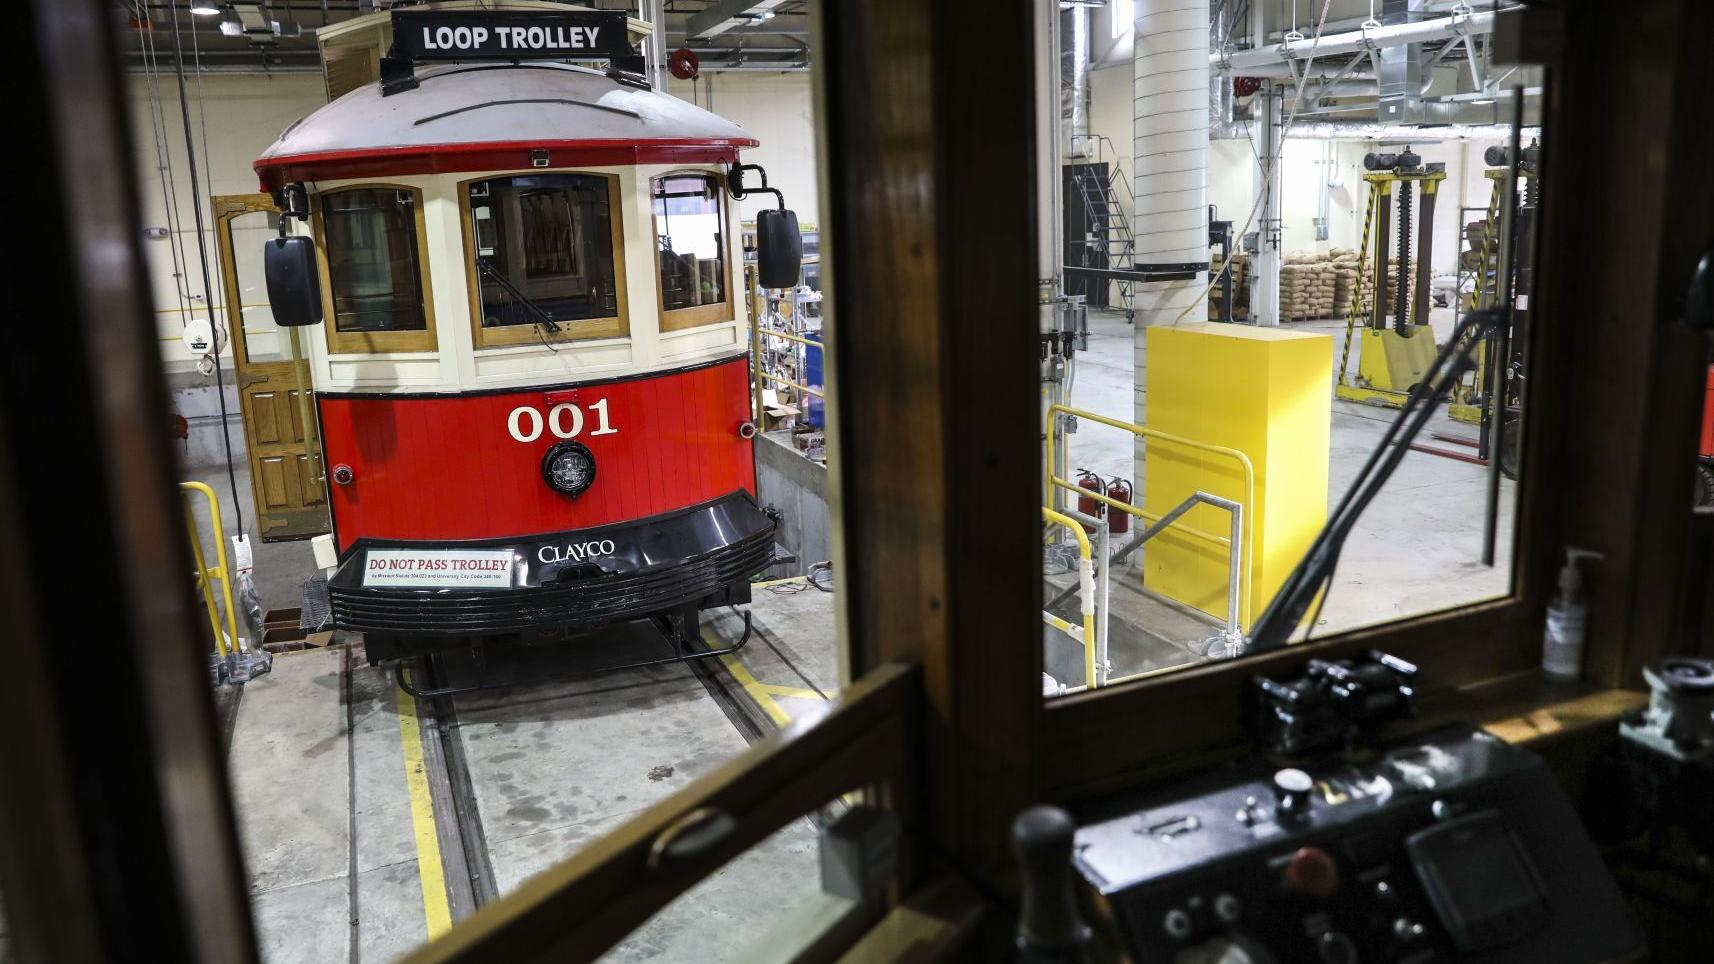 Photos: Loop Trolley still struggling to find backers